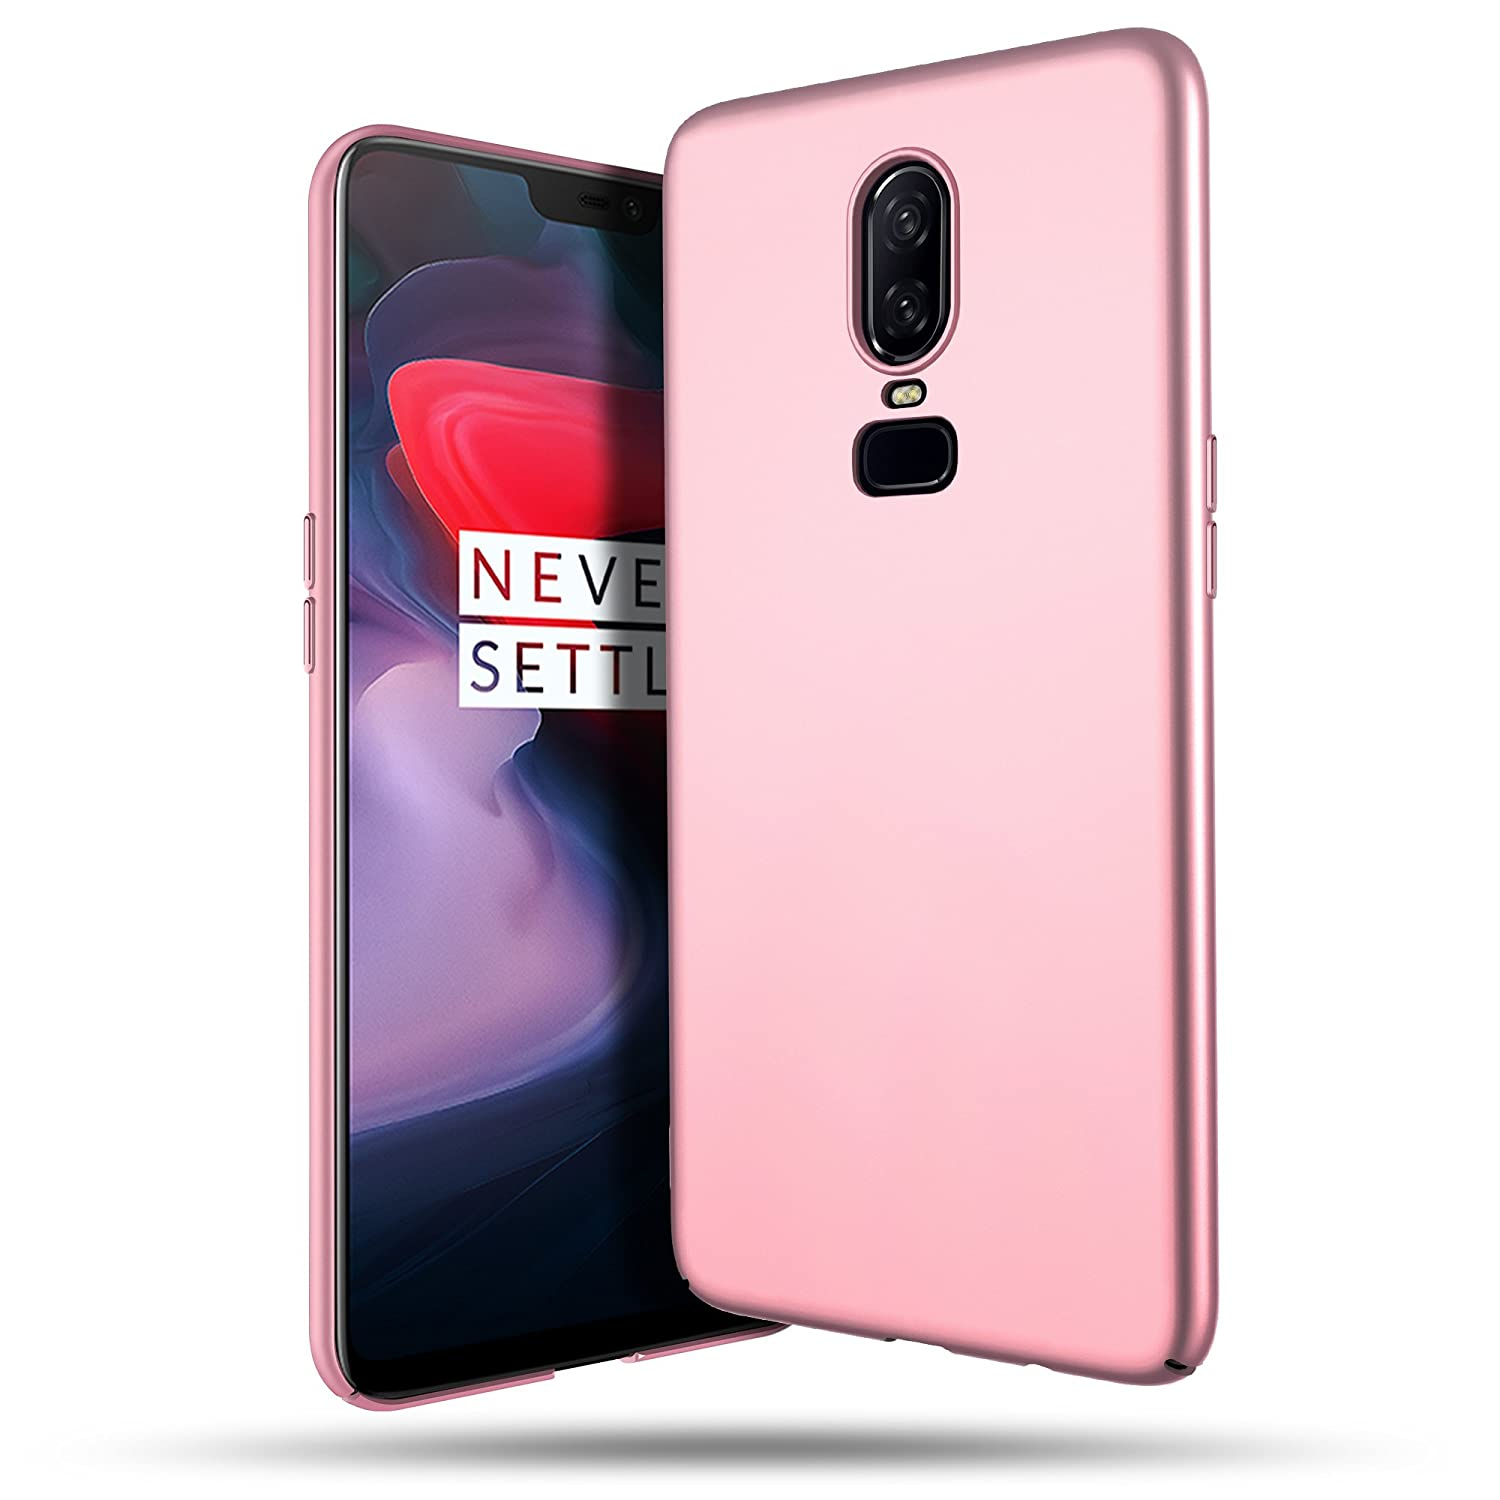 detailed look 23ca7 8762f OnePlus 6 Case, B BELK Ultra Slim Thin Snug-Fit Scratch Resistant Premium  PC Hard Protective Cover with Matte Finish Coating for OnePlus 6, Rose Gold